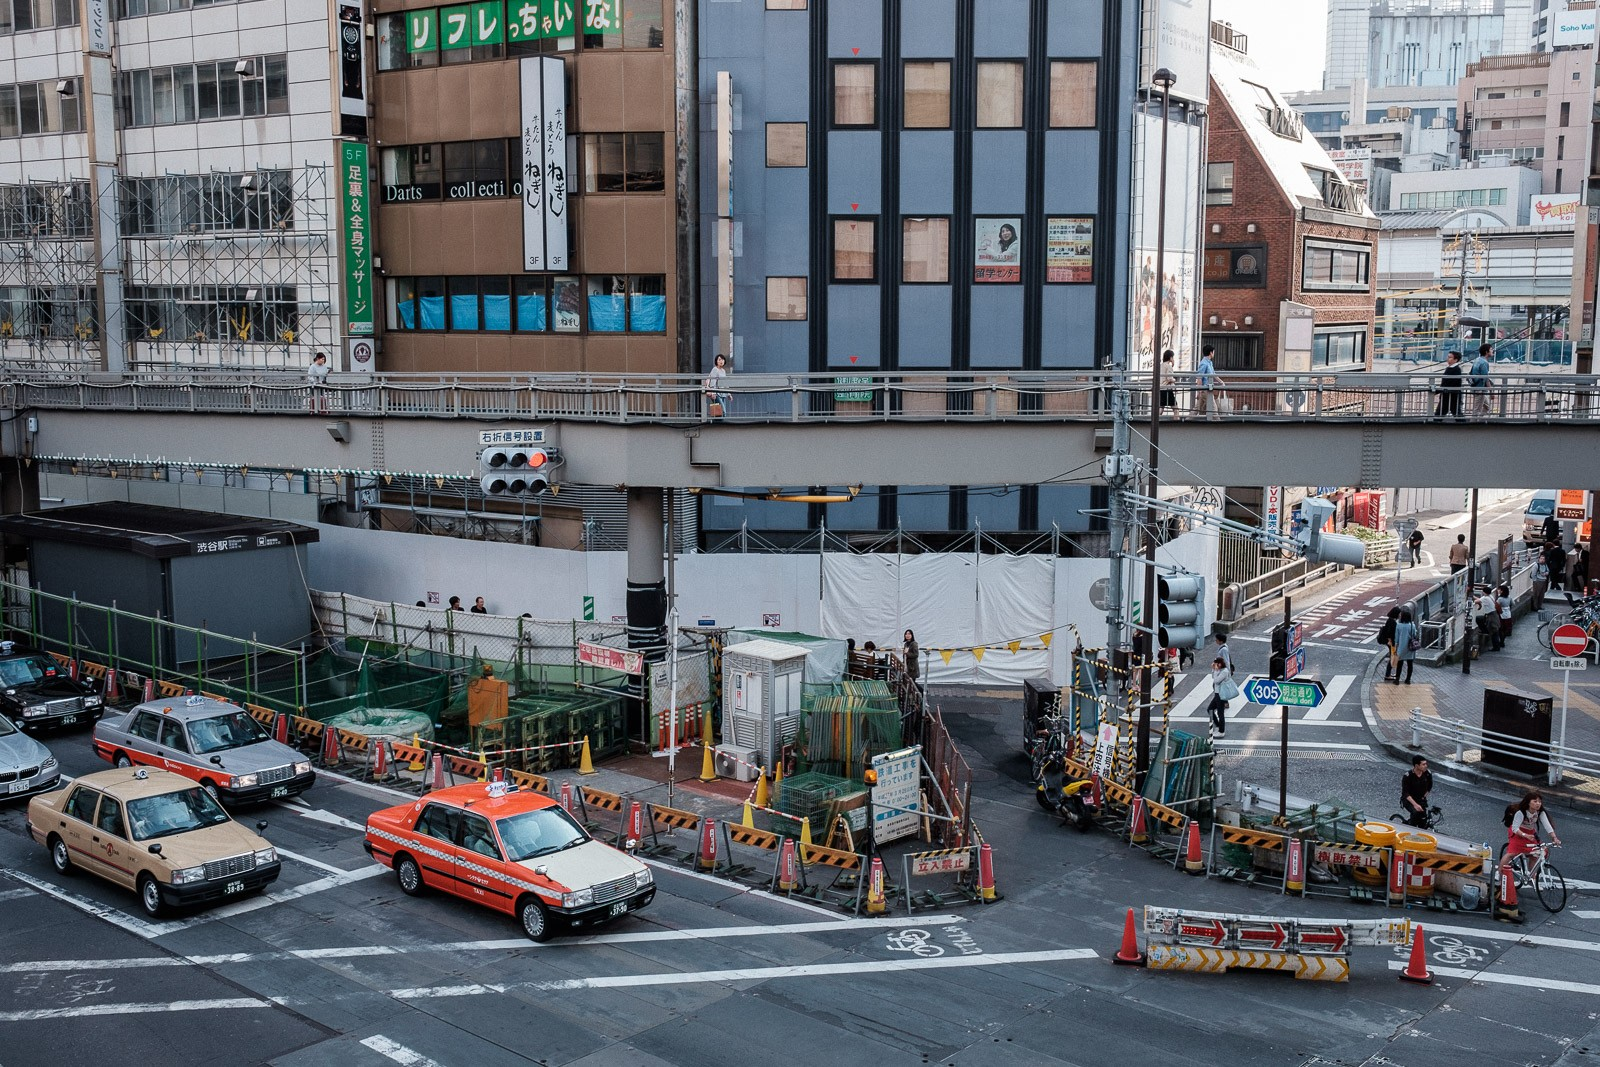 Constructon site and taxis in Tokyo